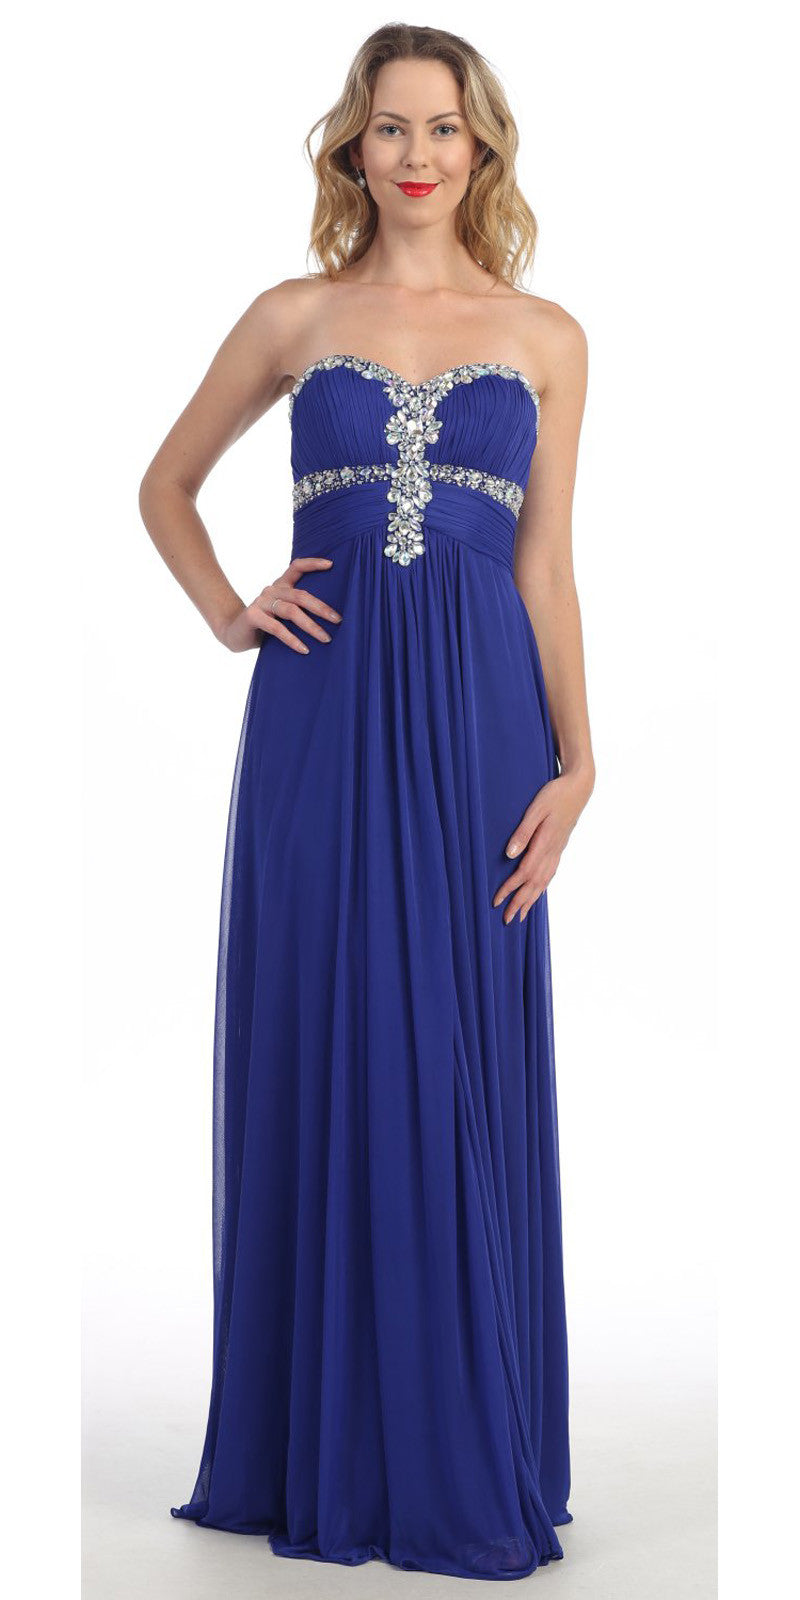 Royal Blue Formal Gown Chiffon Long Empire Waist Rhinestone Bodice